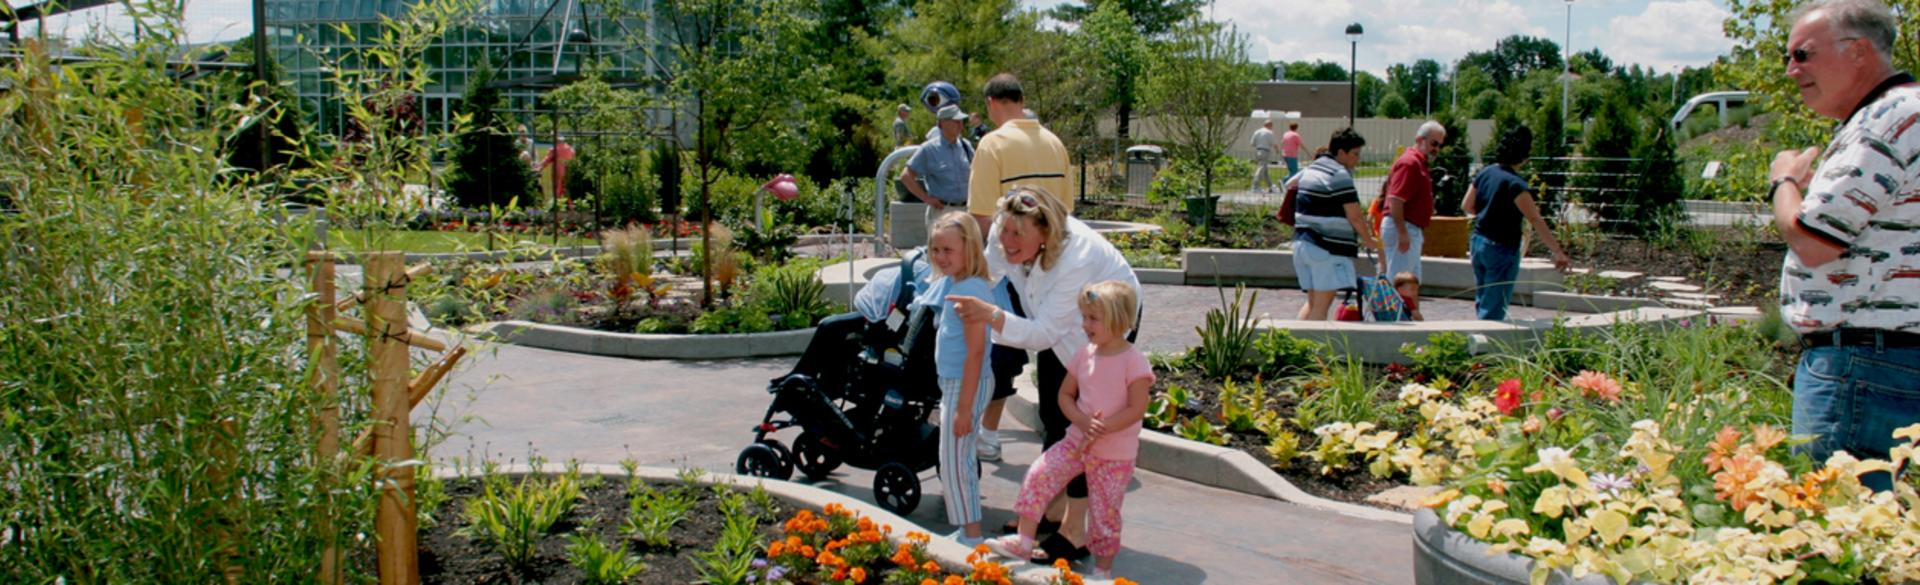 Children walking through the Lena Meijer Children's Garden